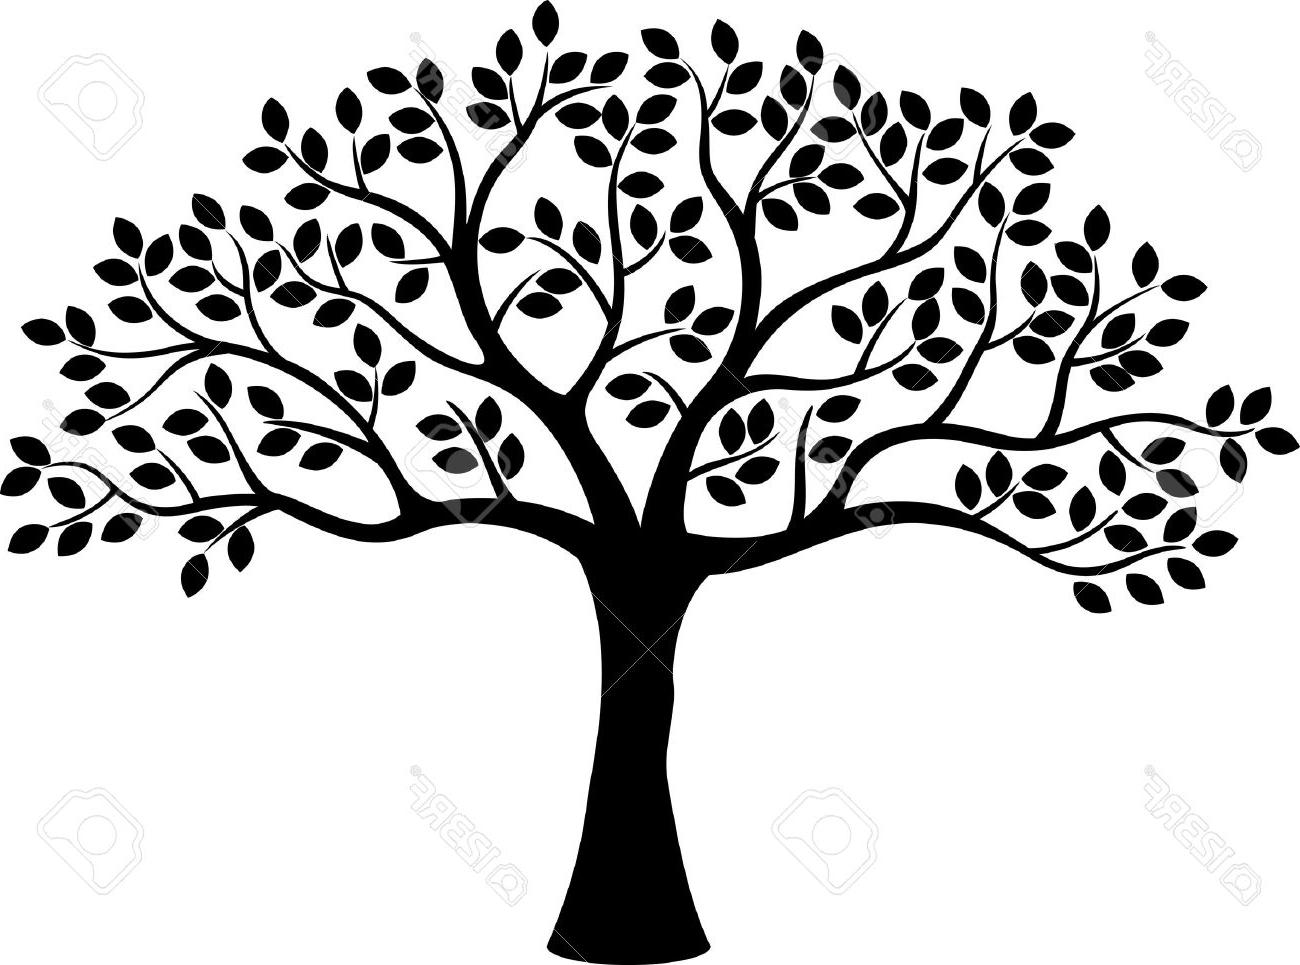 1300x965 Best Hd Tree Silhouette Stock Vector Life Family Image